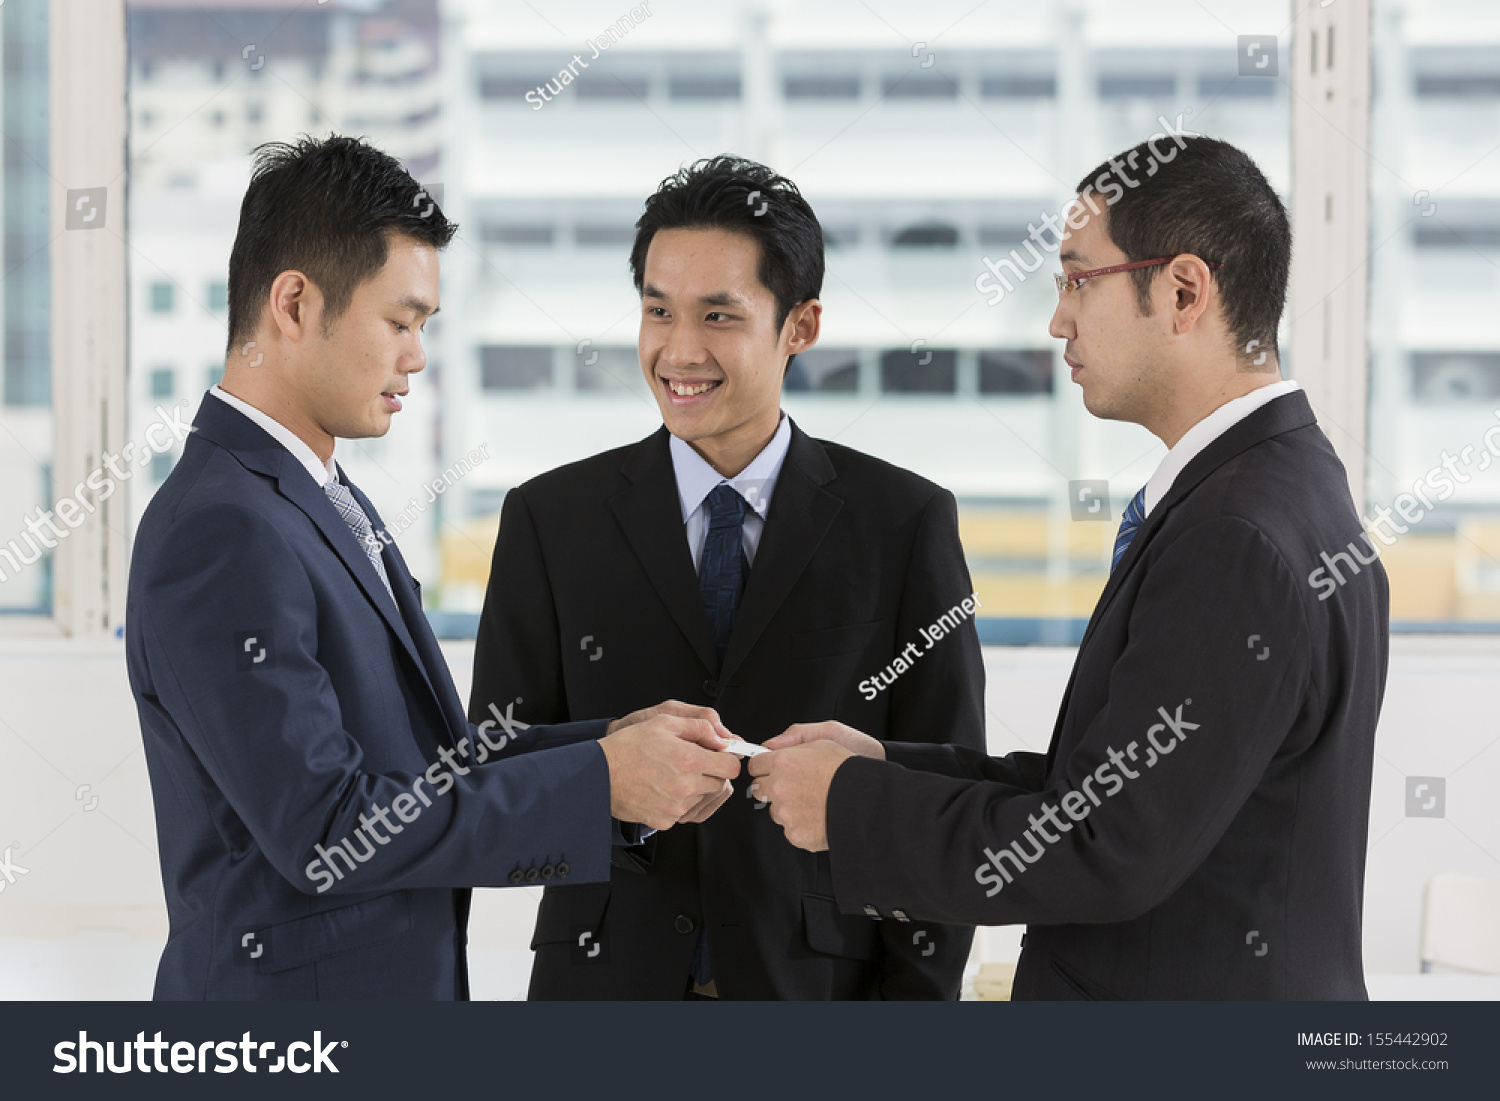 Two Business Men Exchanging Business Cards Stock Photo 155442902 ...